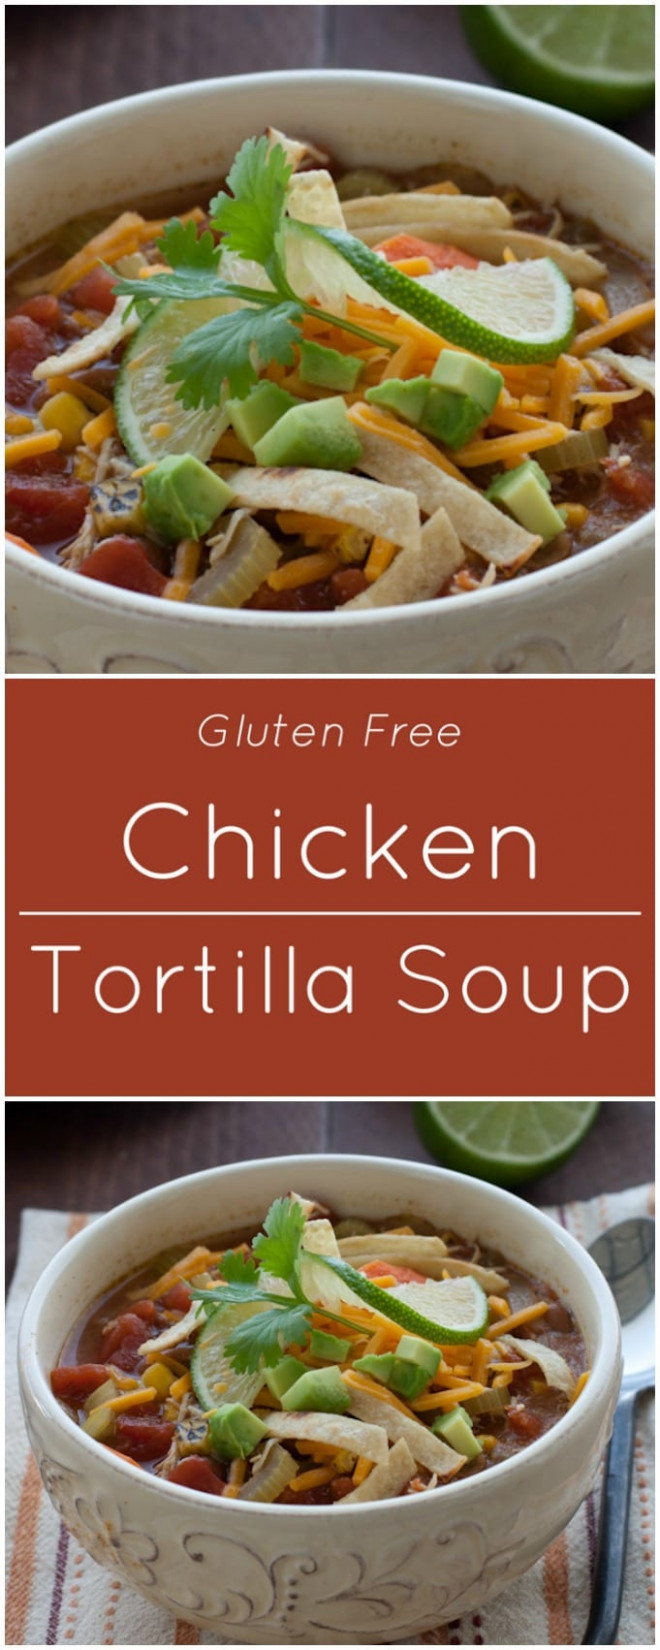 Chicken Tortilla Soup - recipes to make with rotisserie chicken